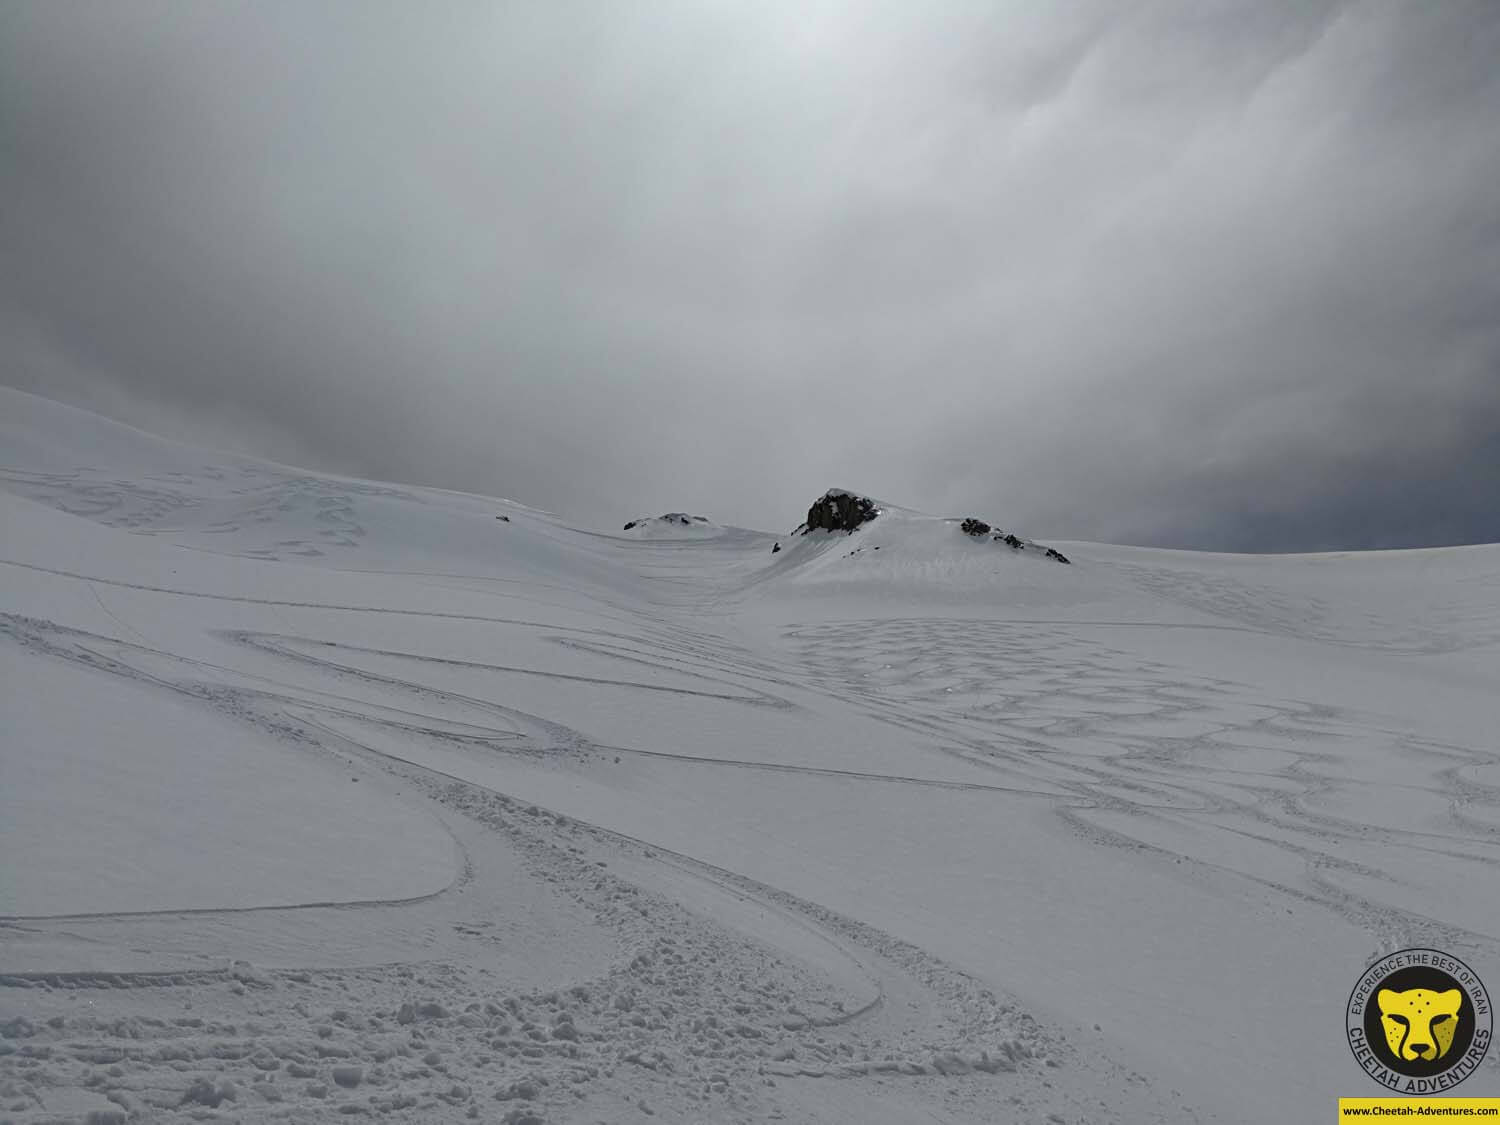 4 Skiing on powder on the way back from Doberar Peak, Damavand Ski touring